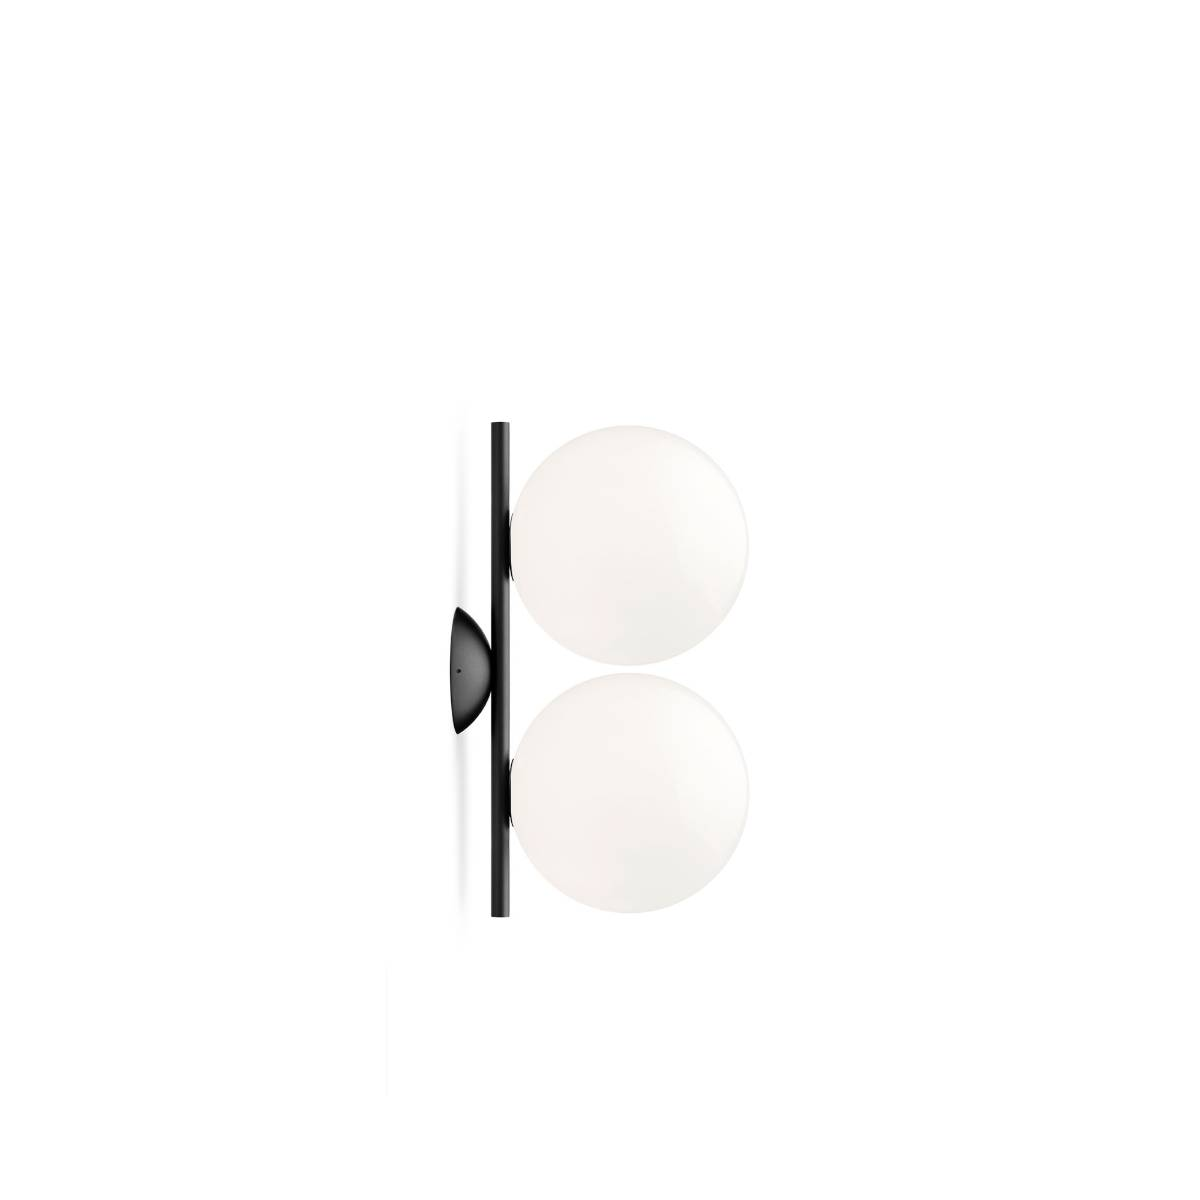 Flos IC Lights C-W1 Double Wandlamp-Plafondlamp